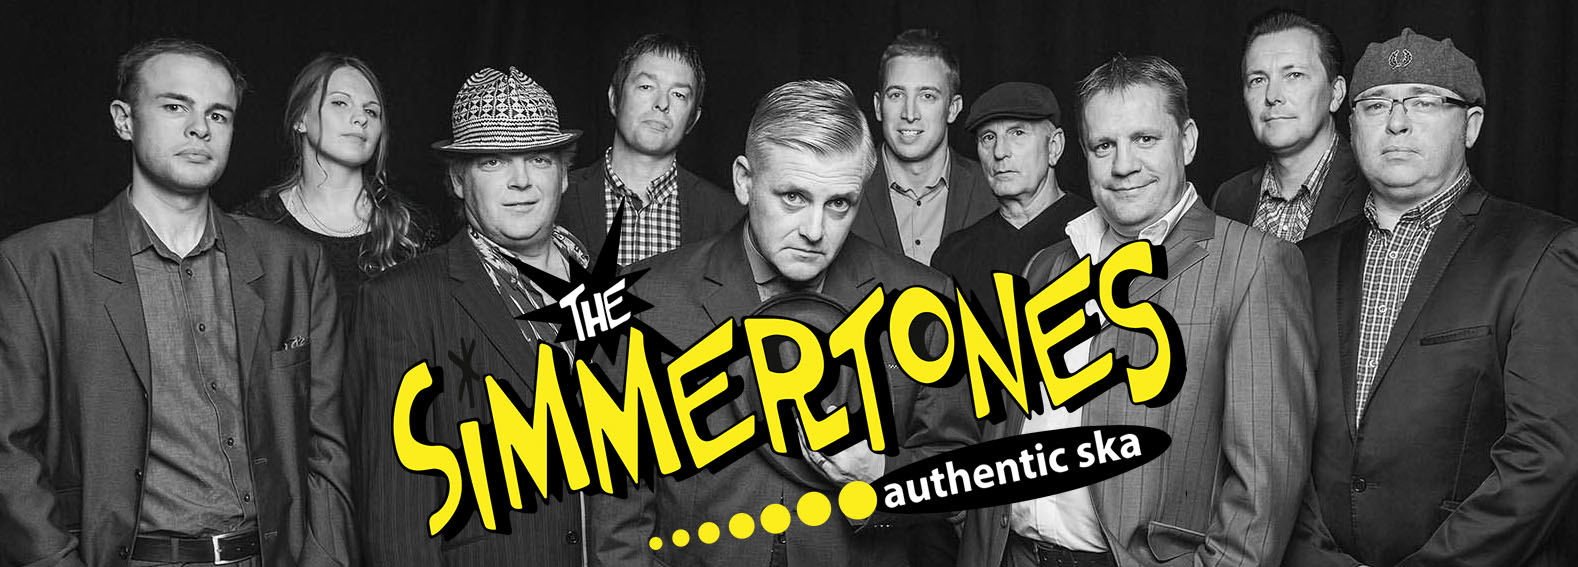 The Simmertones Authentic Ska